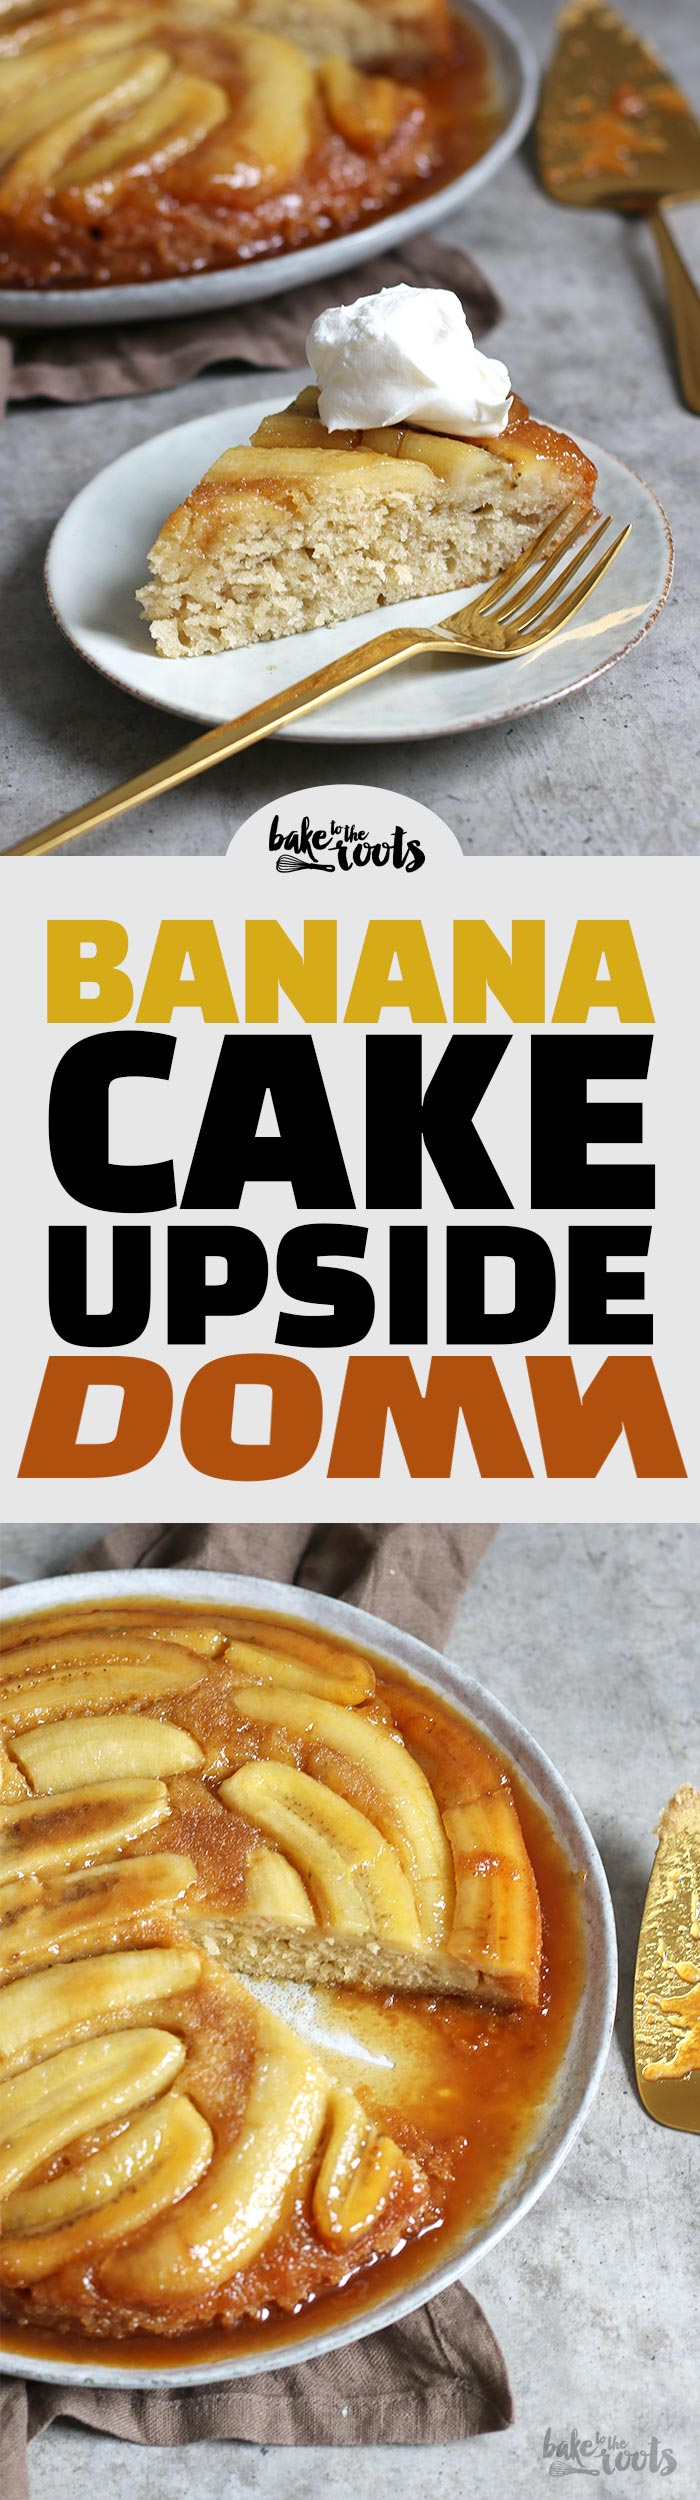 Banana Cake Upside Down | Bake to the roots